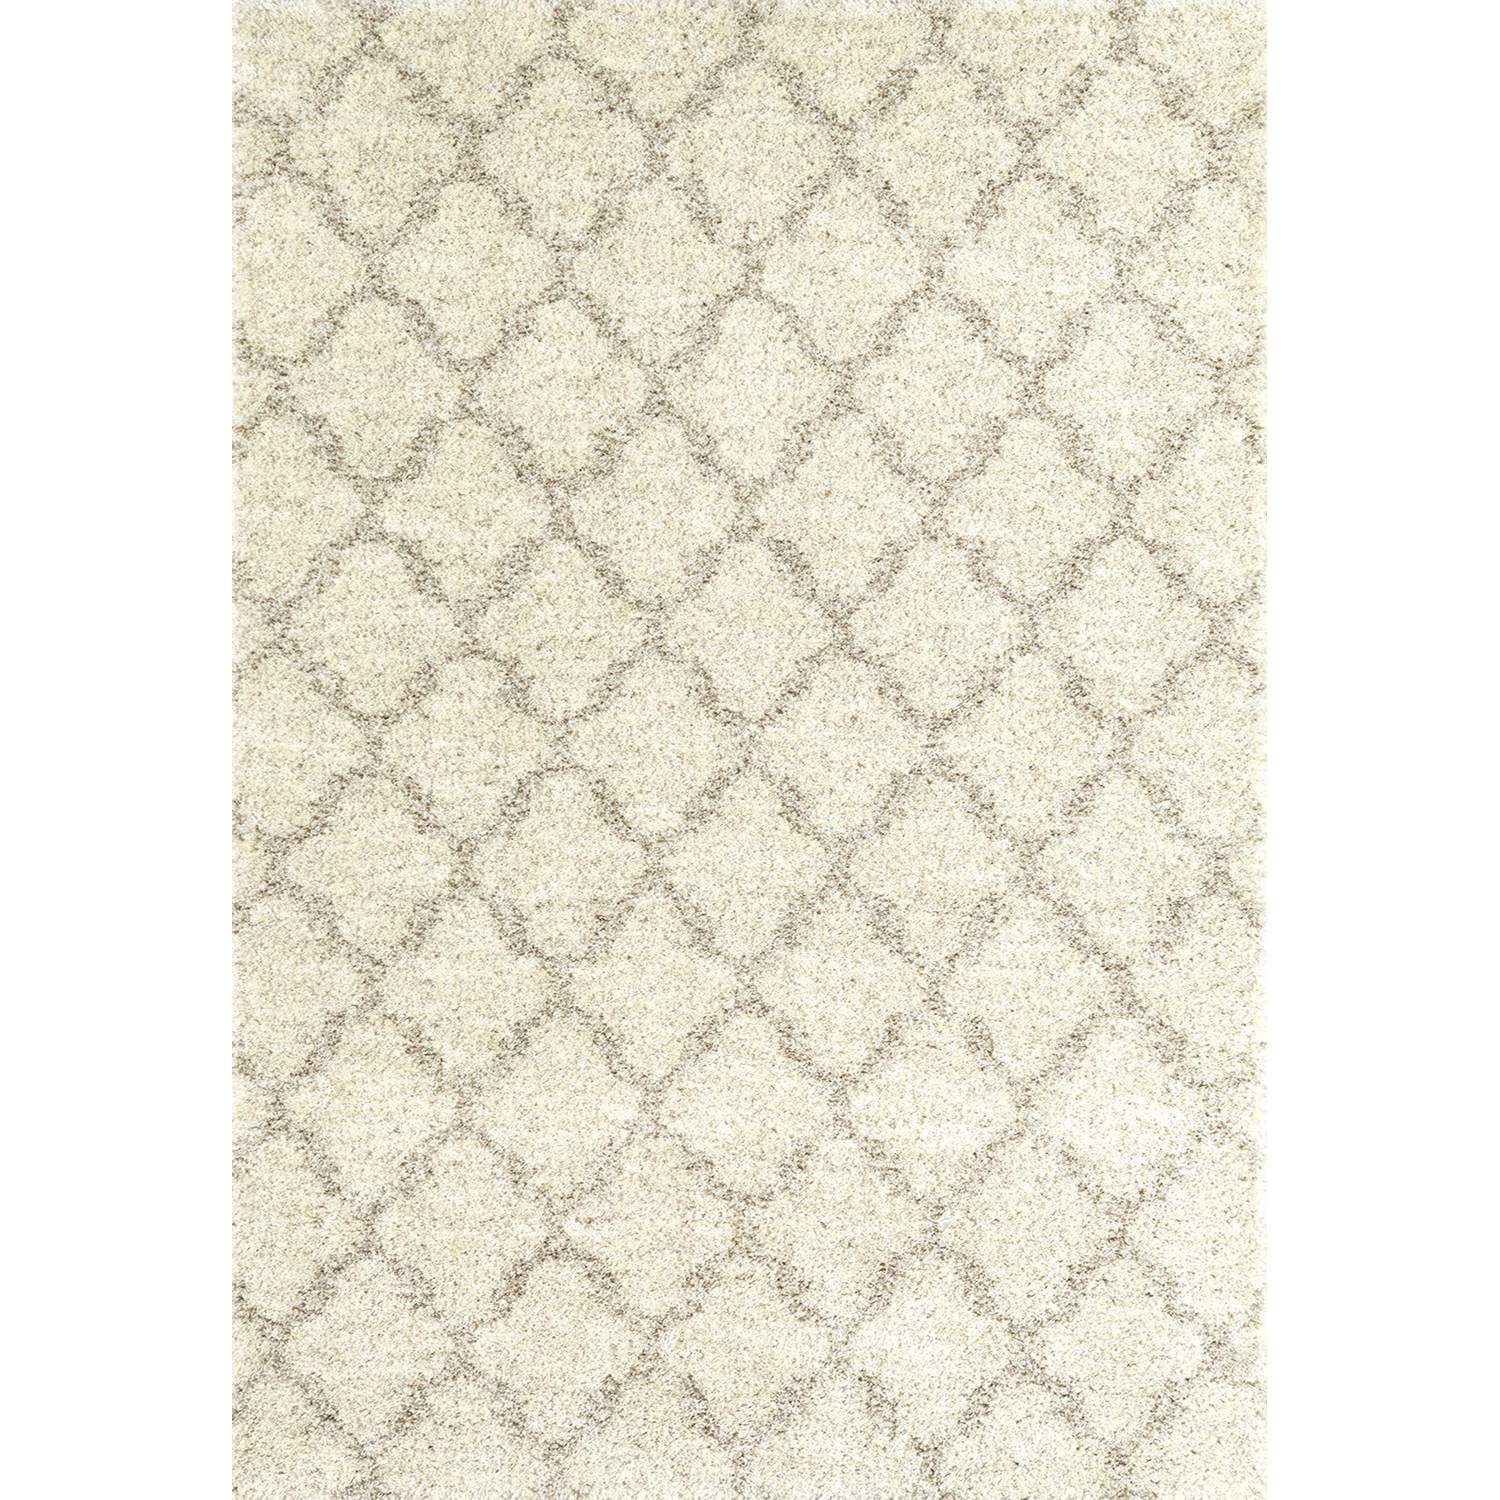 Prima Shag 7'11x10'10 Temara Lattice Brown Rug by Karastan Rugs at Darvin Furniture